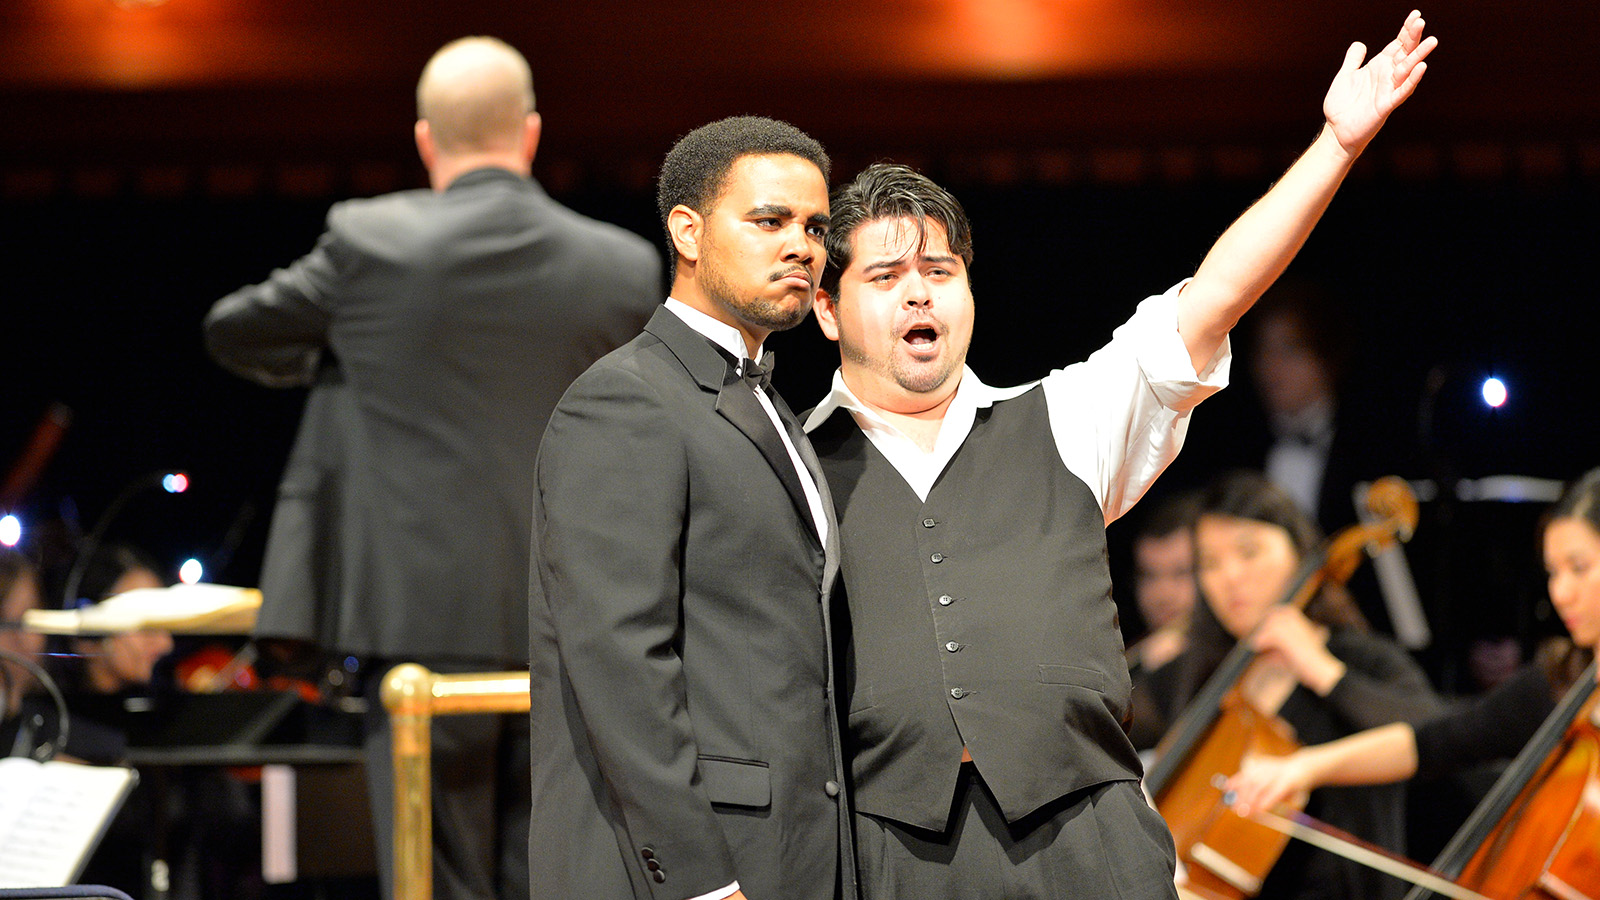 Two vocalists performing in front of orchestra